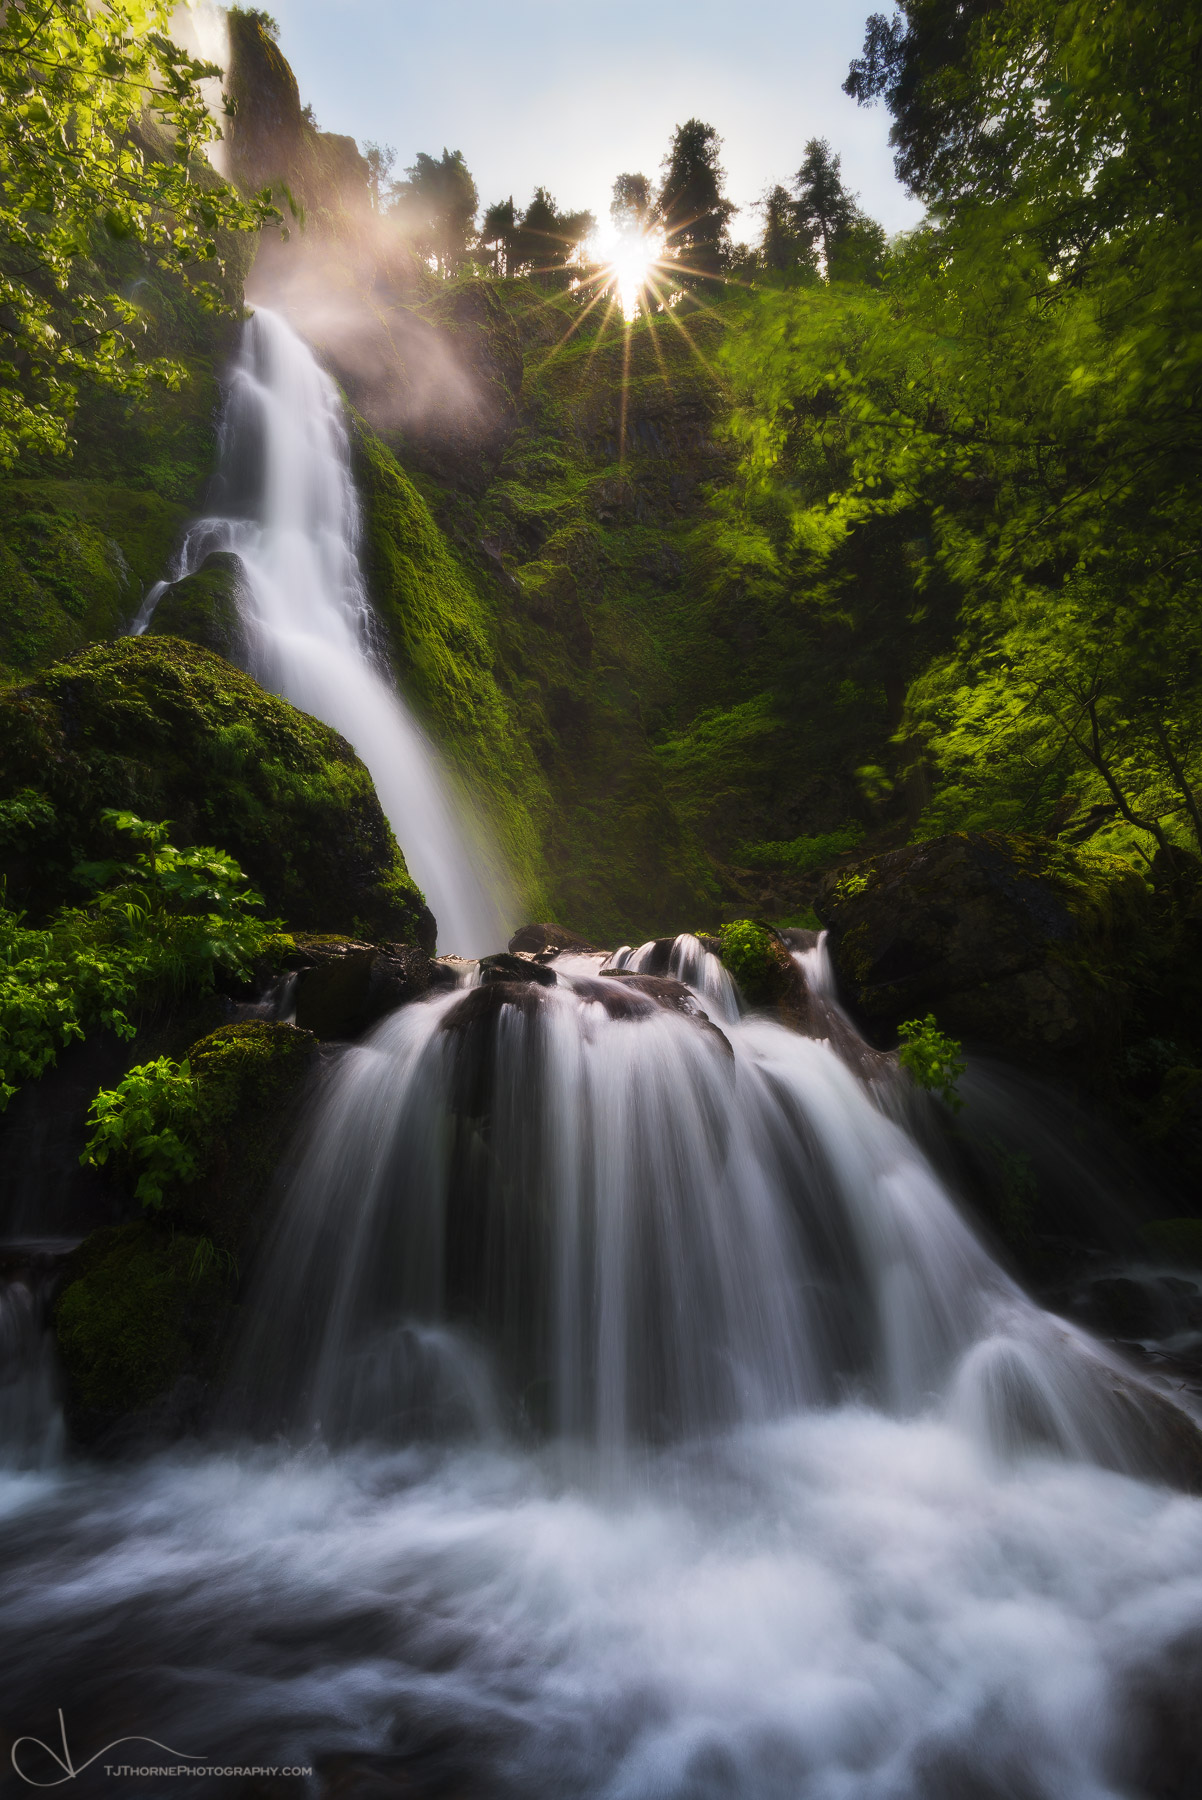 oregon, spring, waterfall, falls, sunlight, columbia river gorge, trees, photo